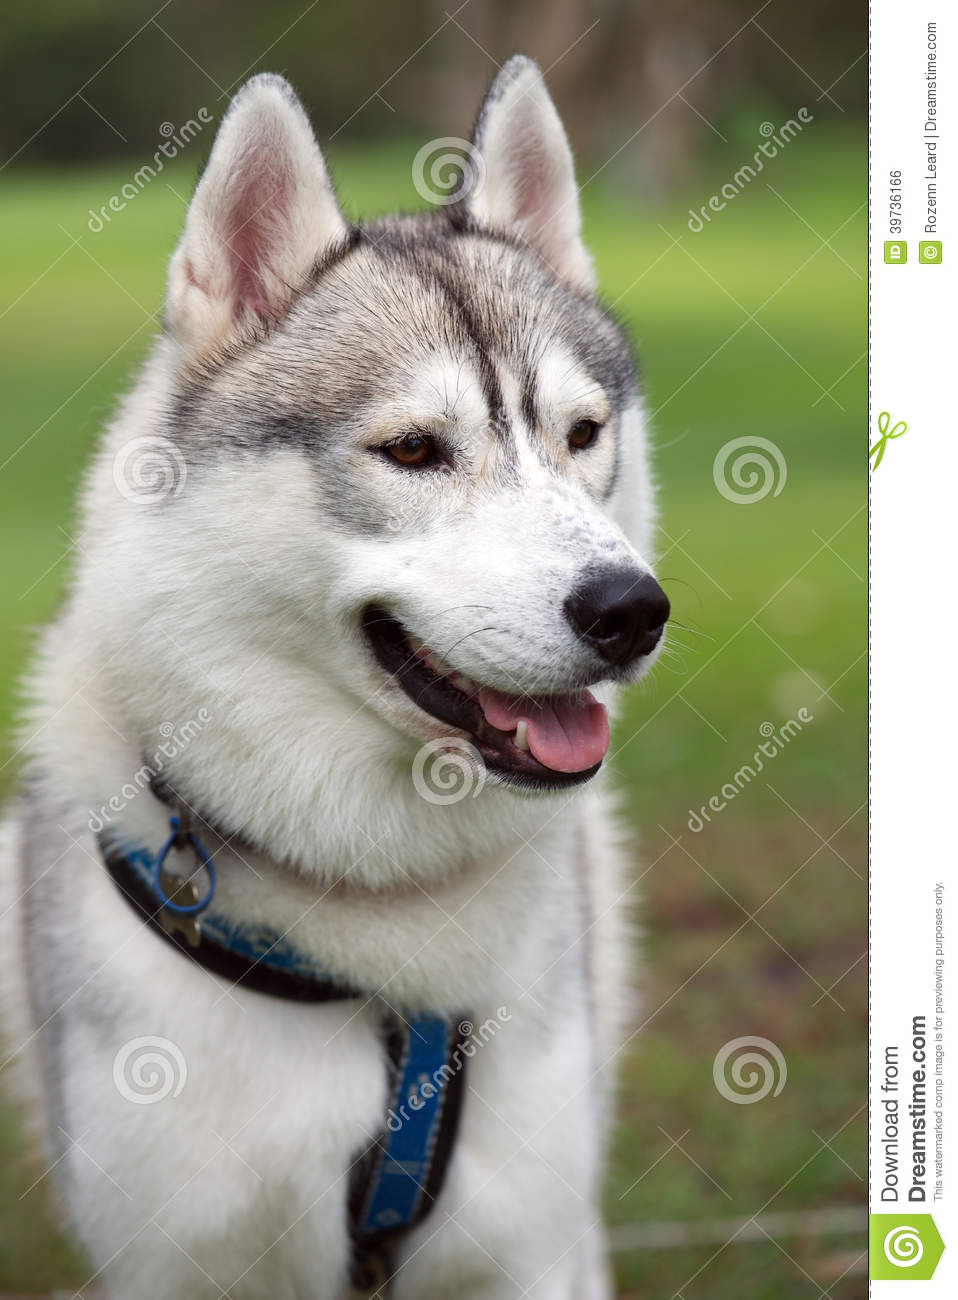 Cute husky dog stock photo. Image of mammal, pedigree ...